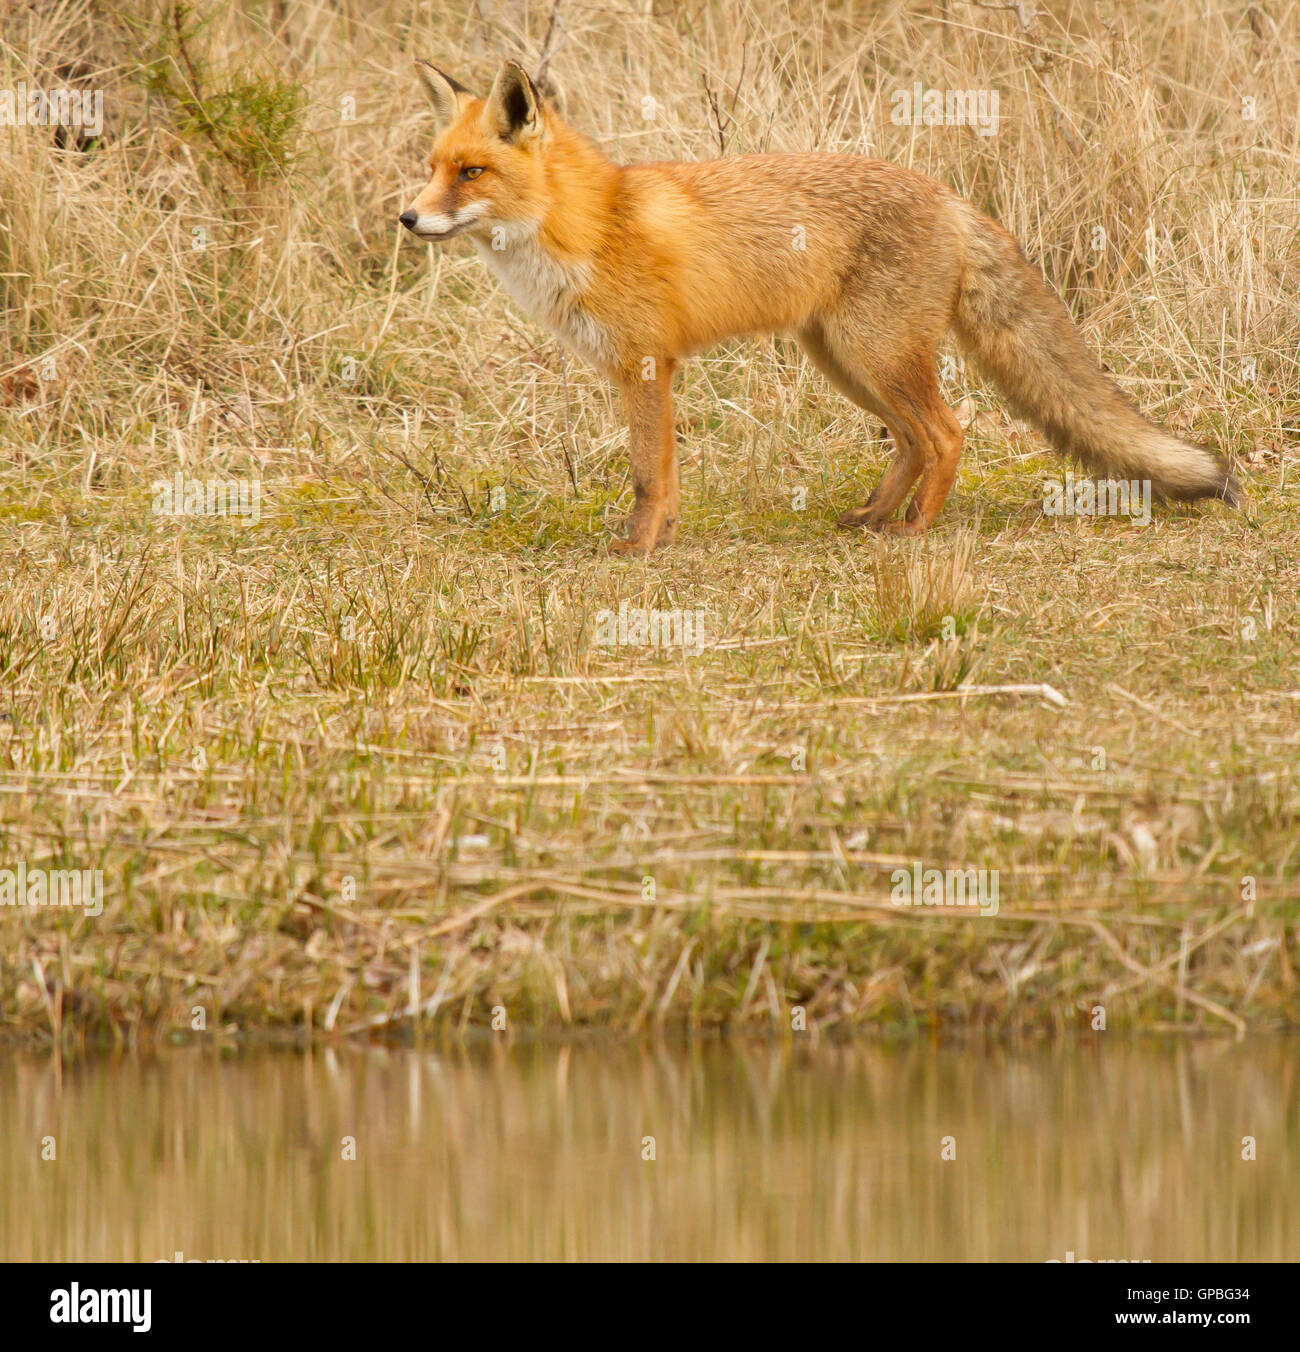 A fox in Holland - Stock Image